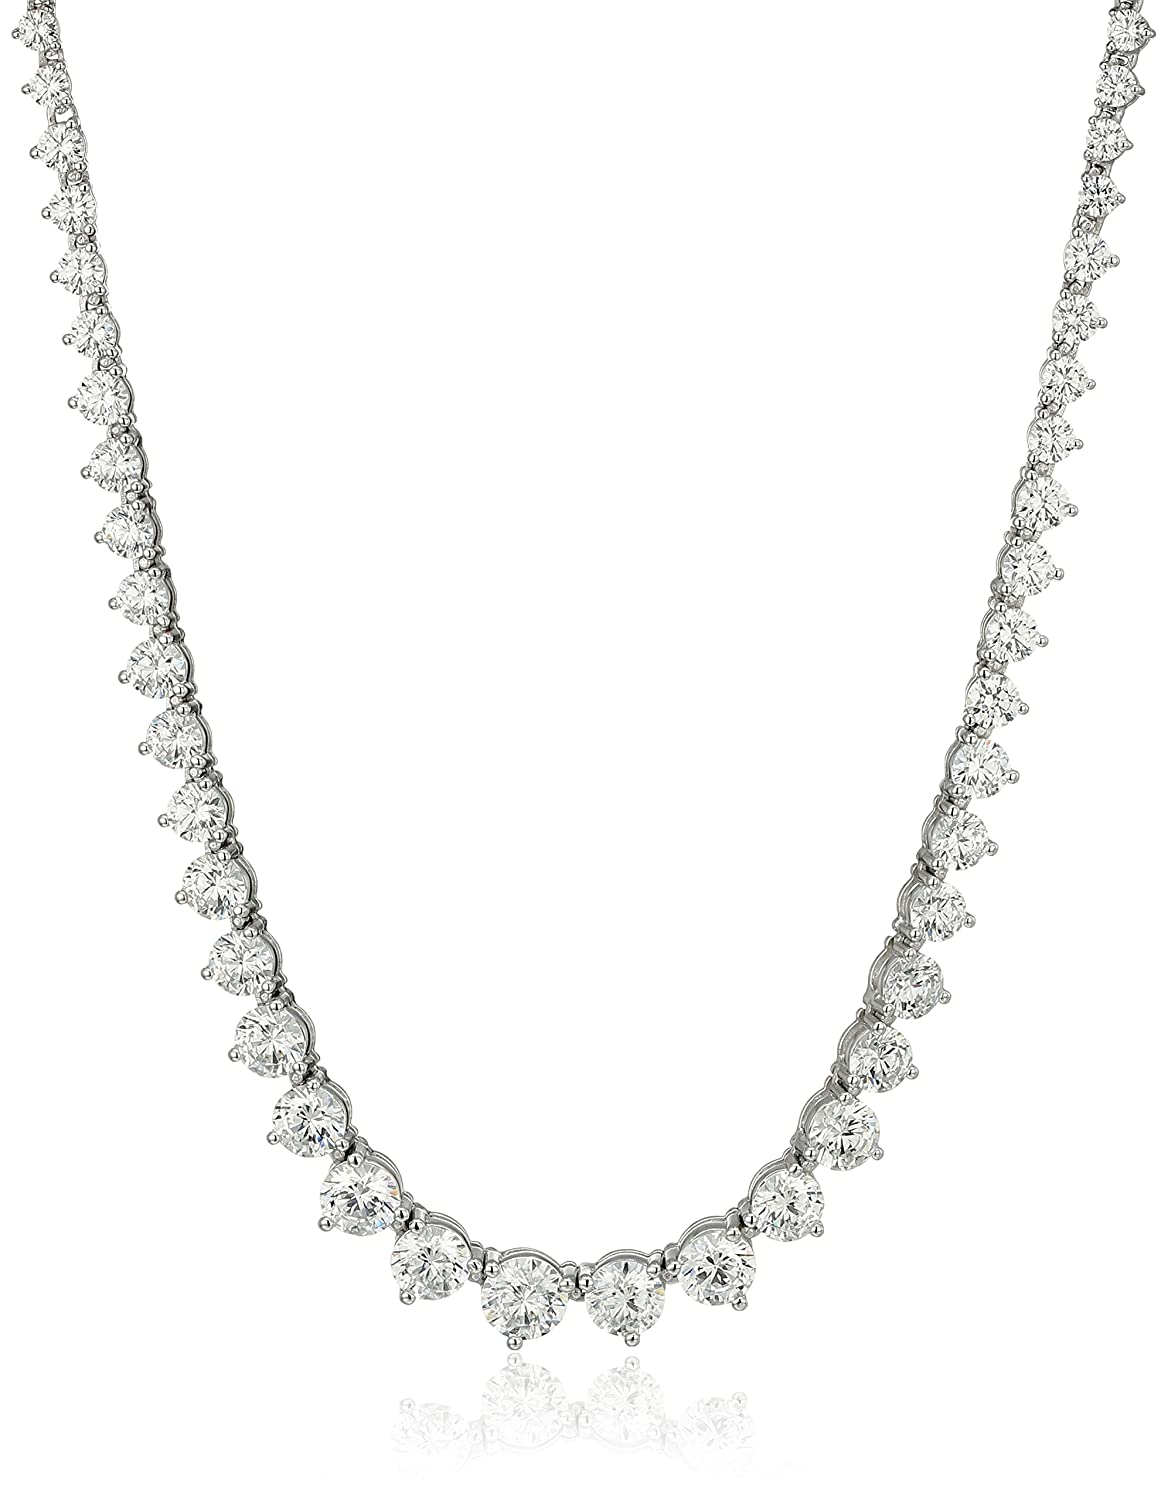 "Amazon.com: Myia Passiello Timeless Platinum-Plated Sterling Silver and  Swarovski Zirconia Graduated Riviera Necklace, 18"": Chain Necklaces: Jewelry"